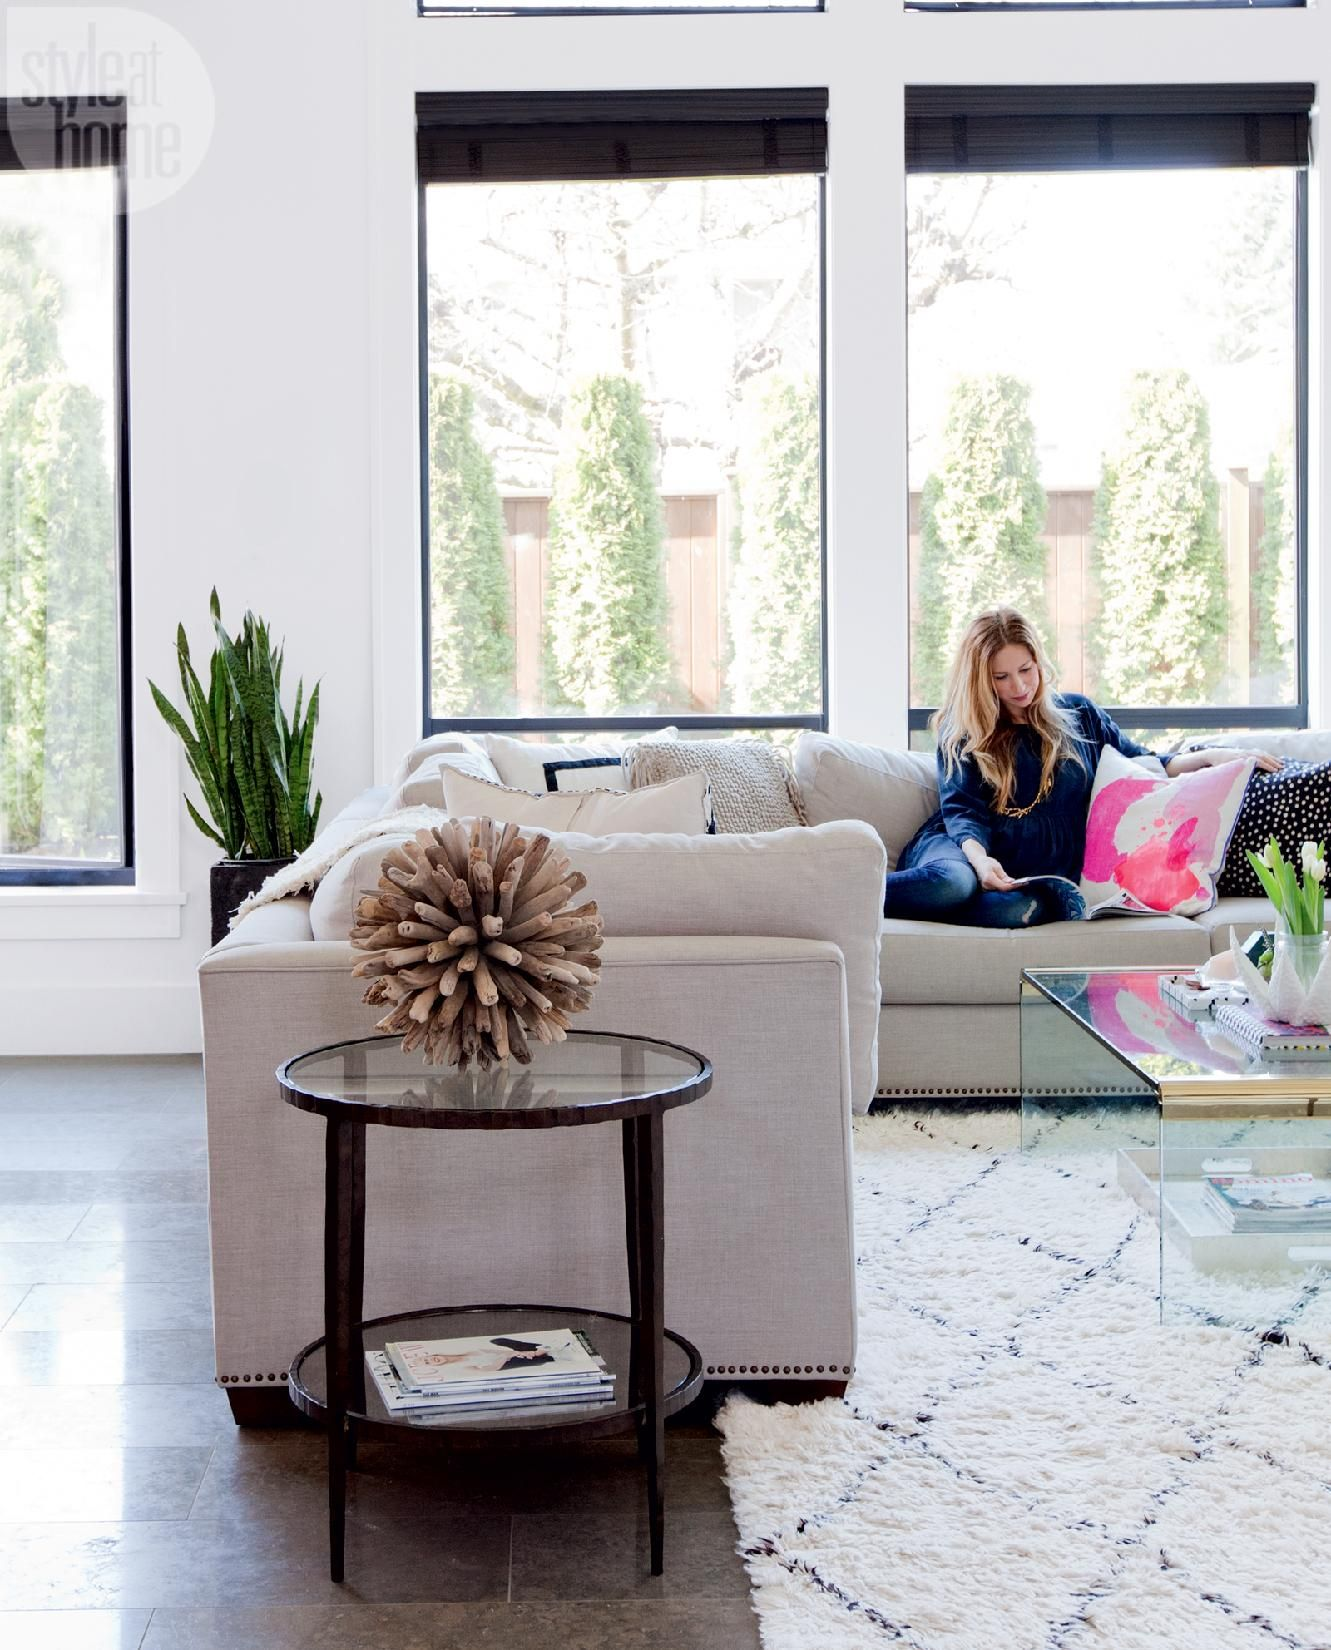 House tour A stylish family friendly home designed